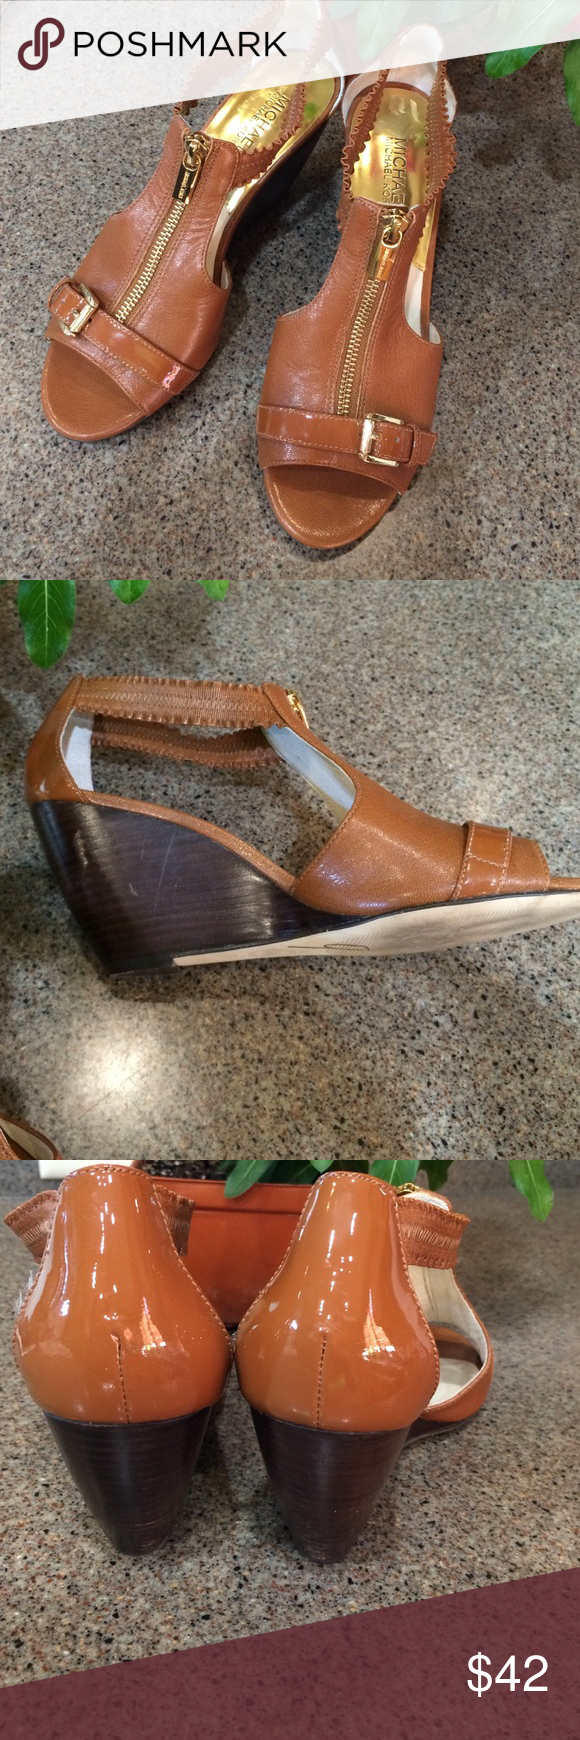 0bc7af1f2c4 Carmel colored leather with patent leather trim across toe and heel cup. 3